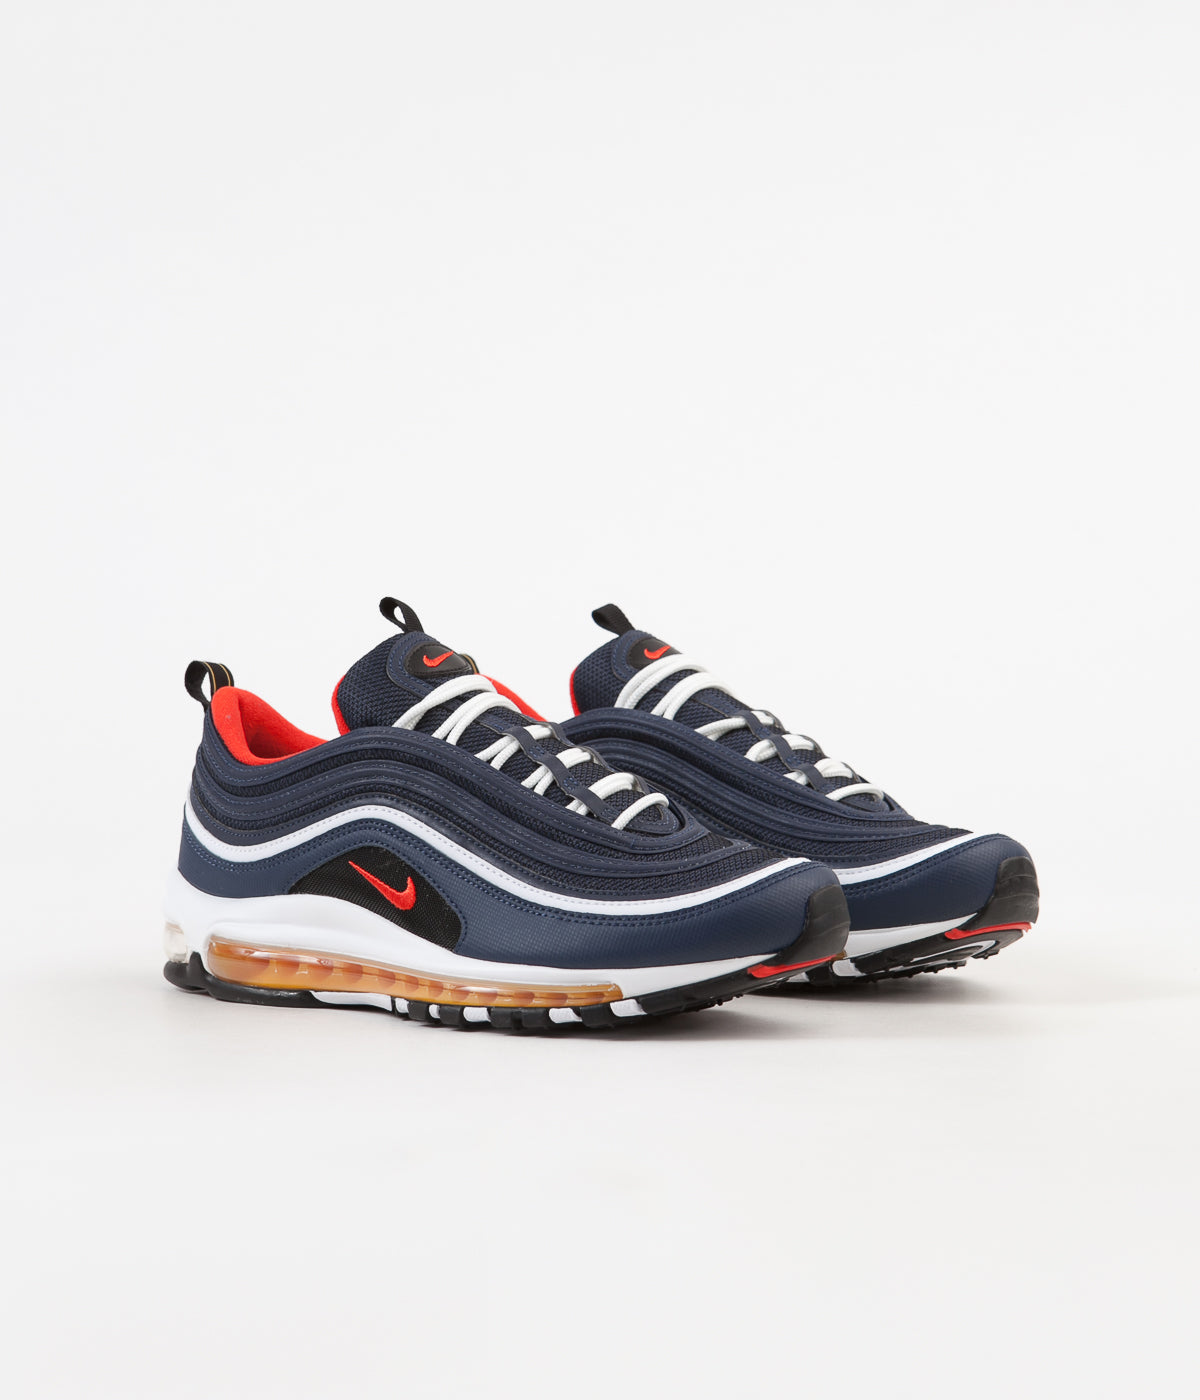 detailed look bd9d1 b3b56 Nike Air Max 97 Shoes - Midnight Navy / Habanero Red - Black ...